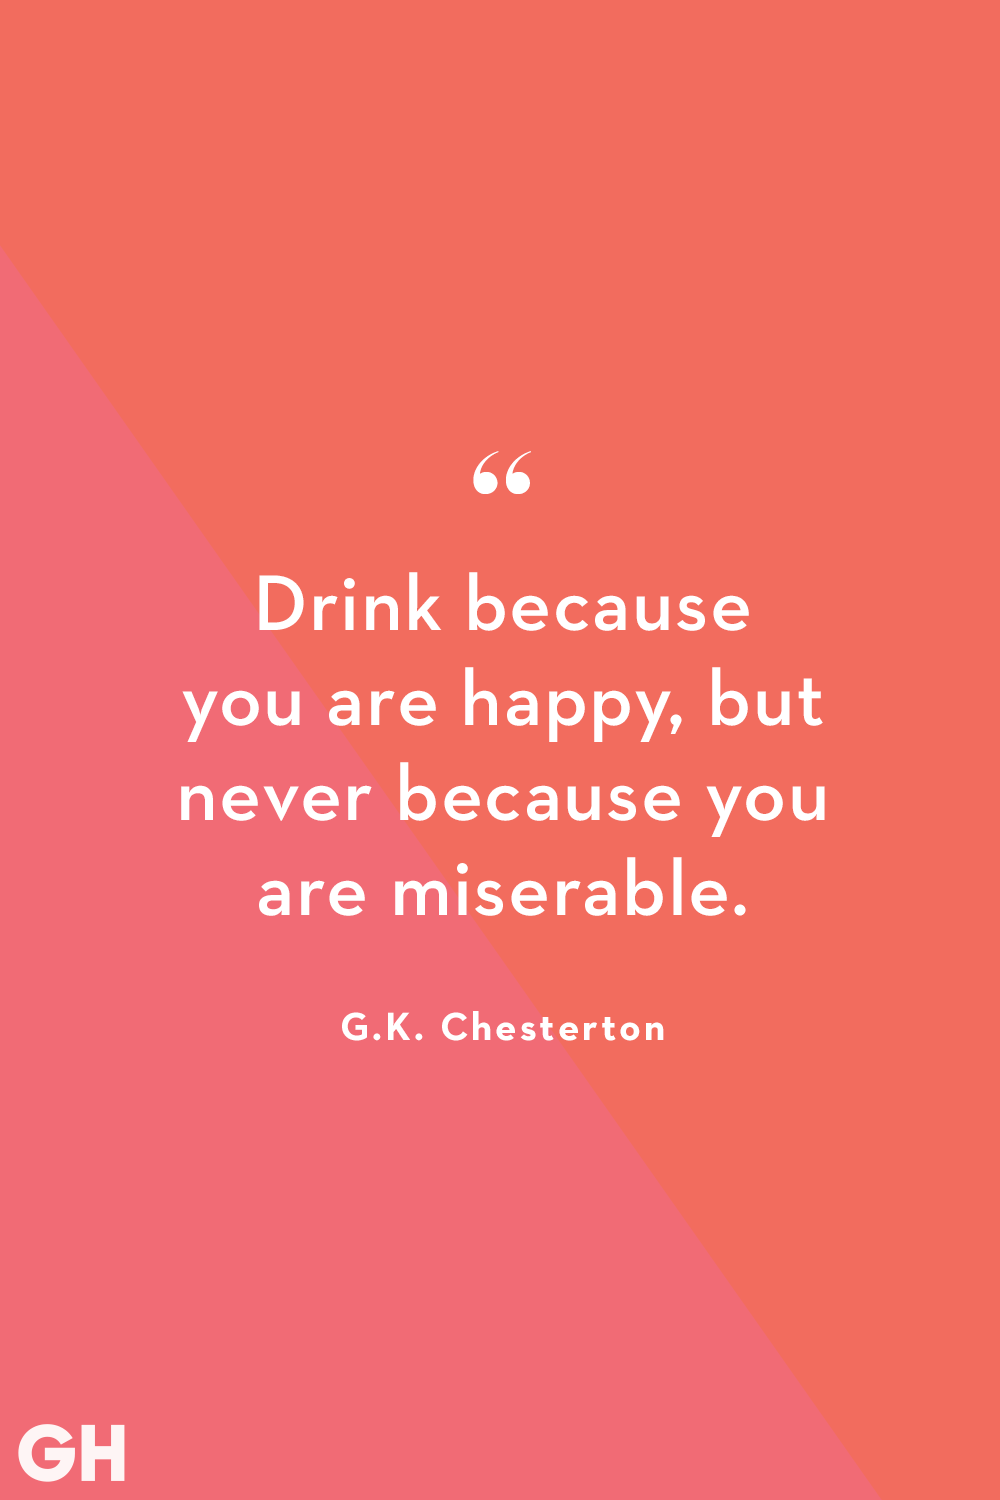 G.K. Chesterton Alcohol Quote